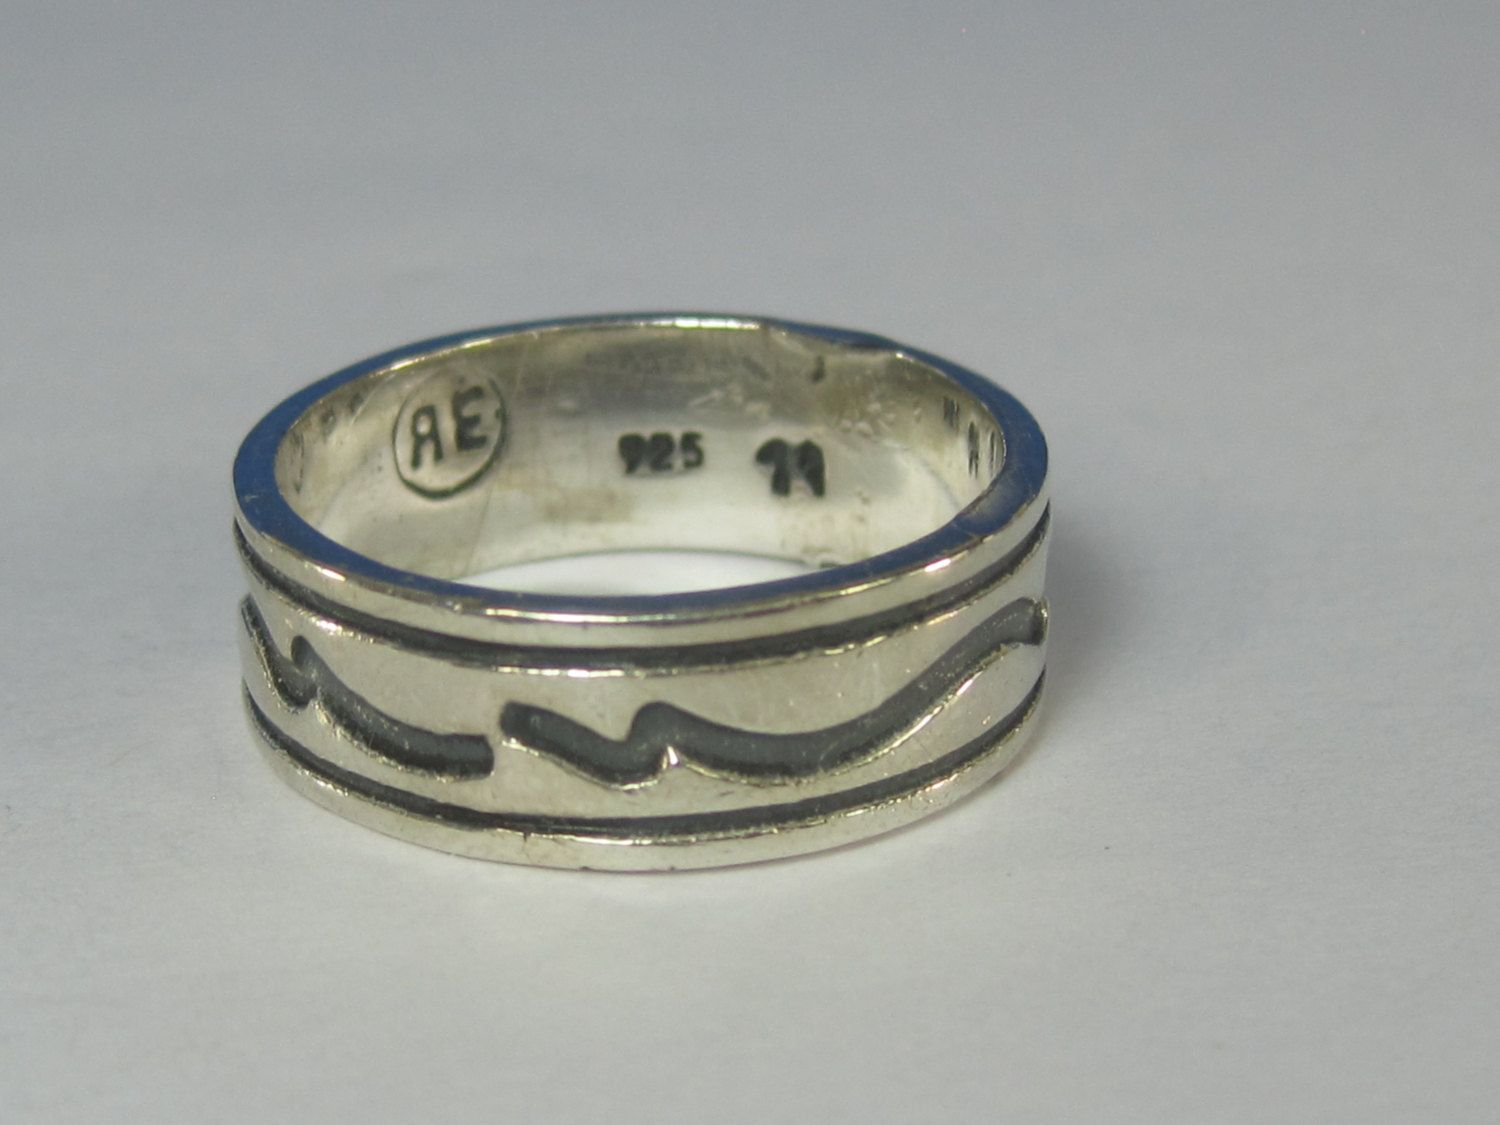 Vintage Sterling Silver Mens Band Ring Size 11 AE by